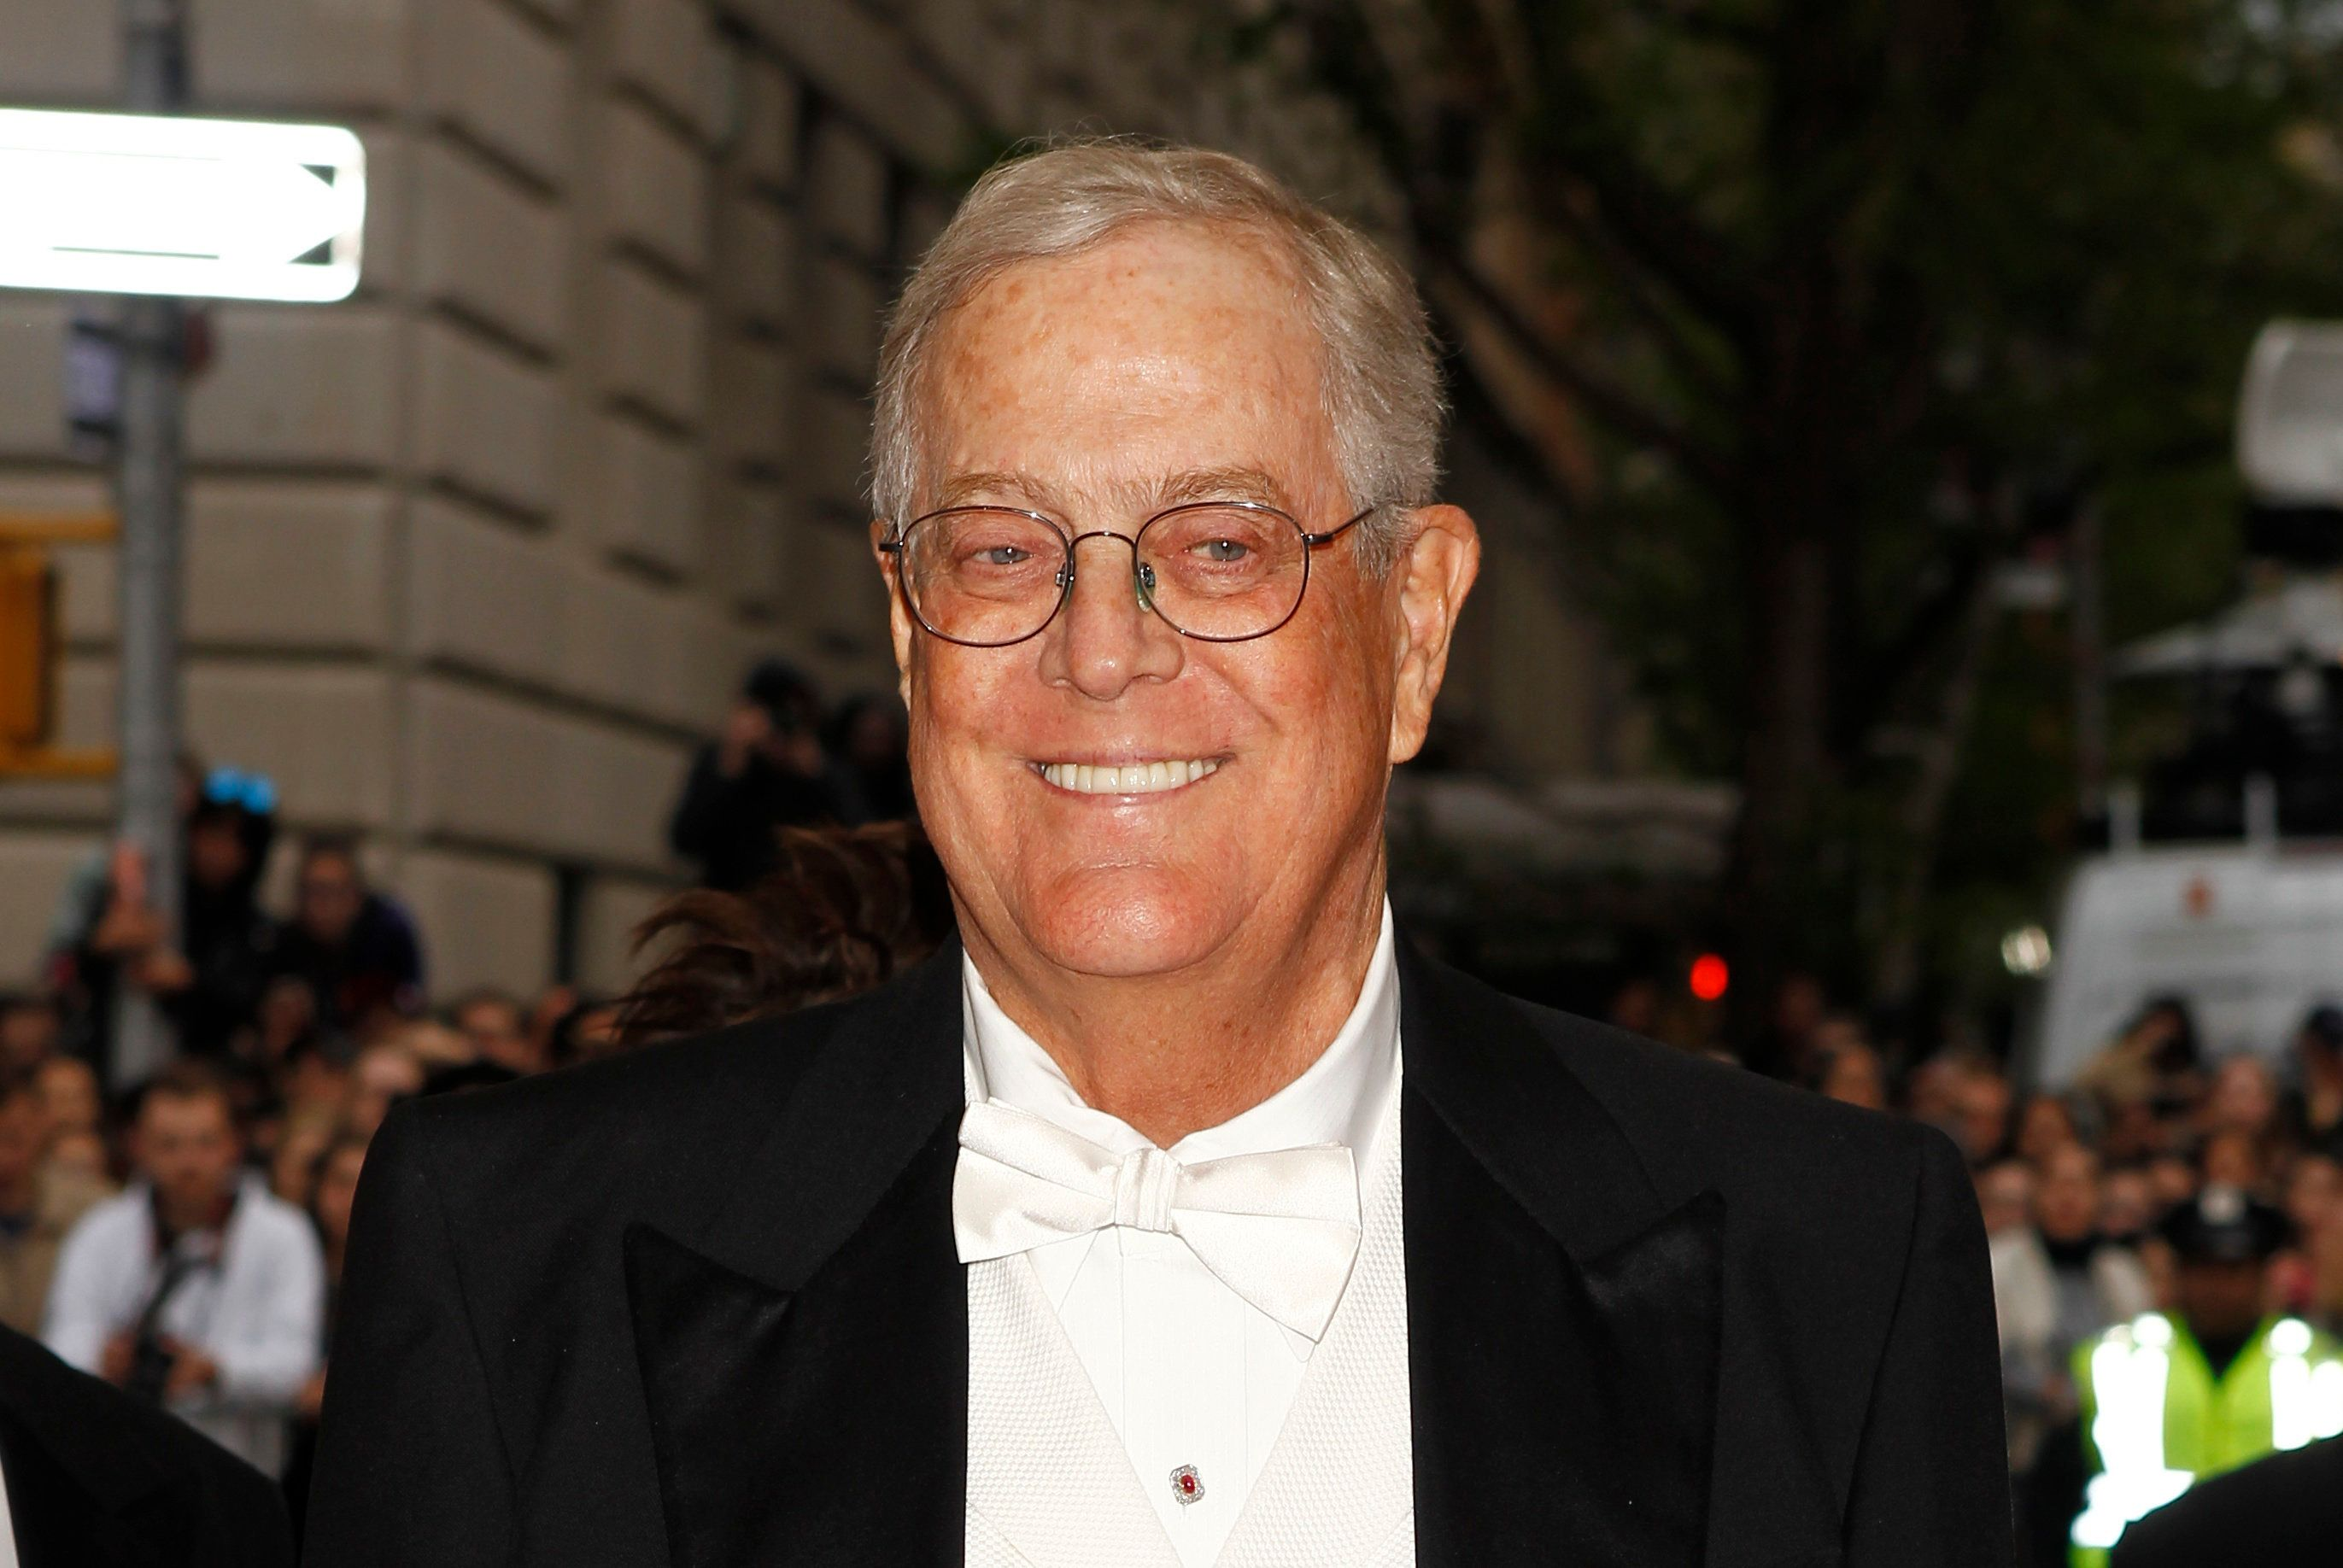 David Koch arrives at the Metropolitan Museum of Art Costume Institute Gala Benefit in New York City, May 5, 2014.